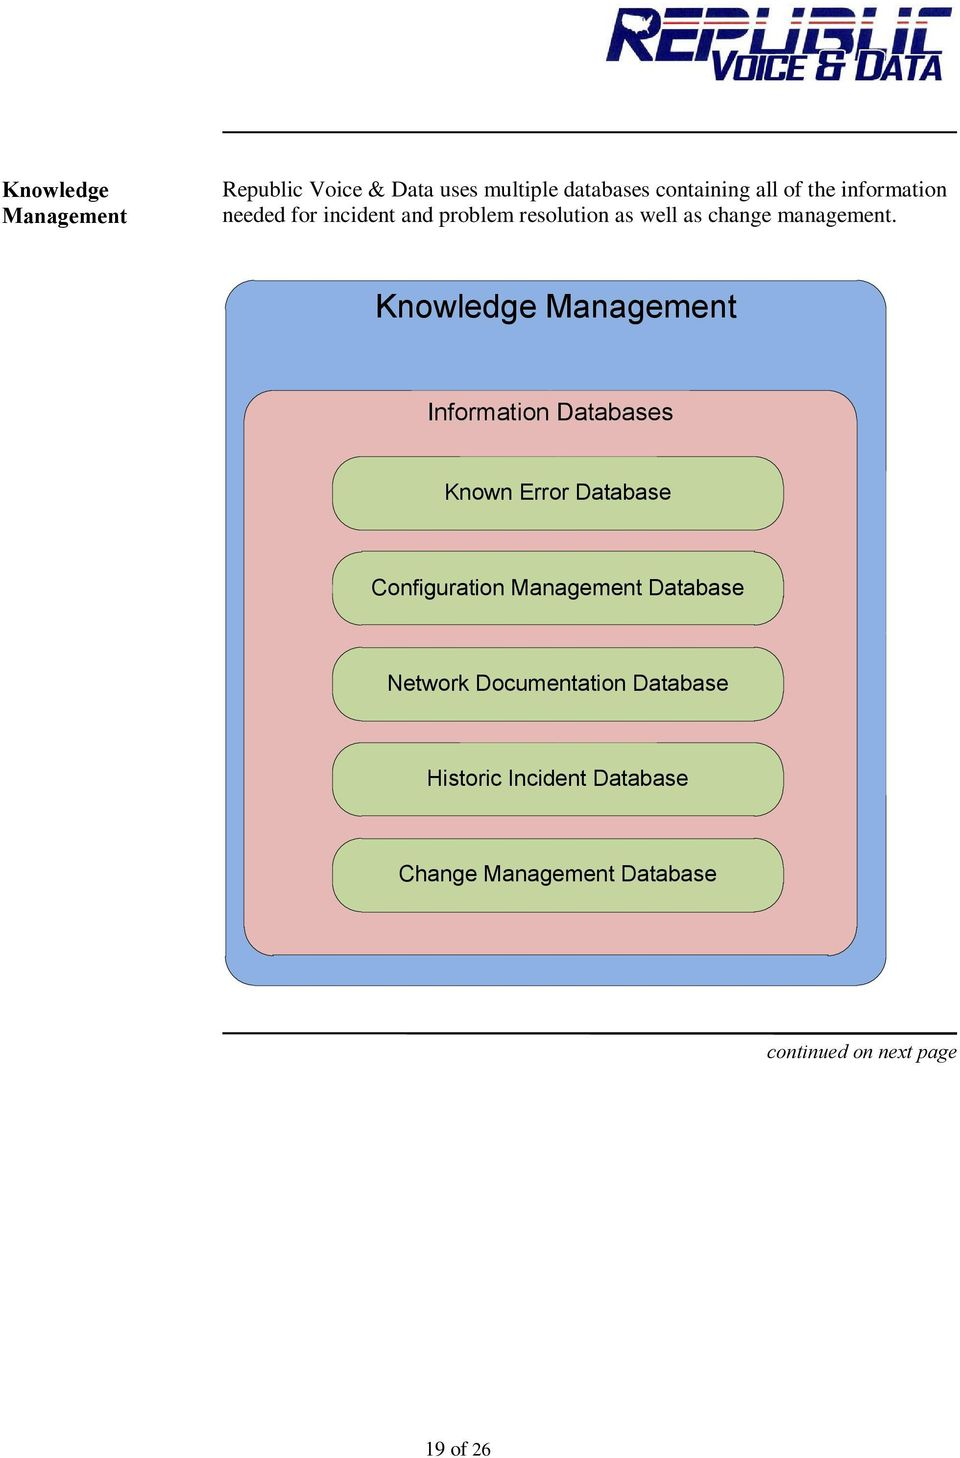 Knowledge Management Information Databases Known Error Database Configuration Management